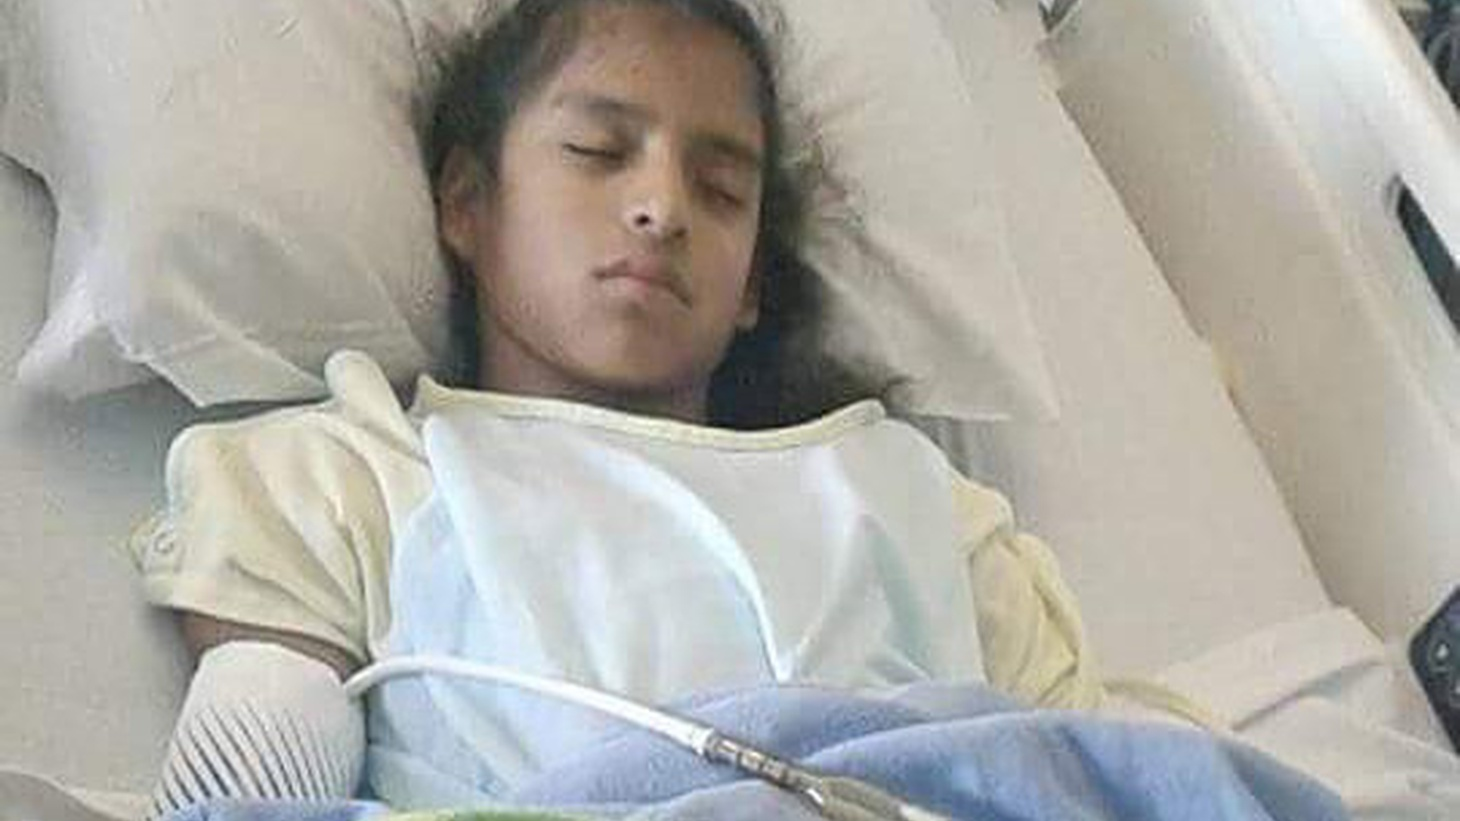 Rosa Maria Hernandez  was brought to this country illegally from Mexico when she was three months old. Now, she's ten and suffers from cerebral palsy.